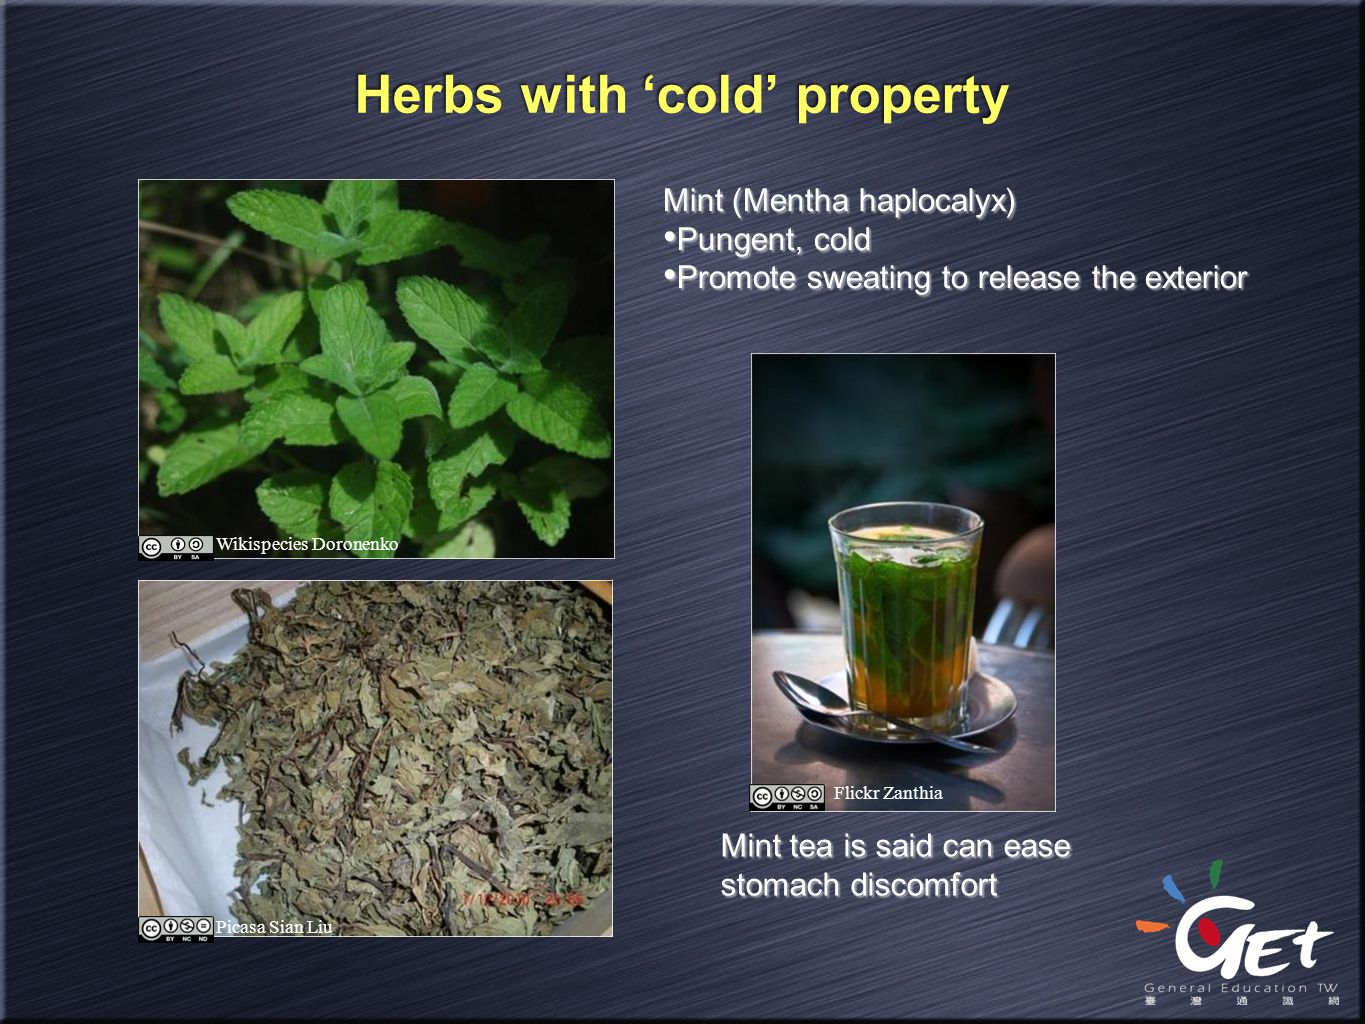 Herbs with 'cold' property Mint (Mentha haplocalyx) Pungent, cold Promote sweating to release the exterior Mint (Mentha haplocalyx) Pungent, cold Prom